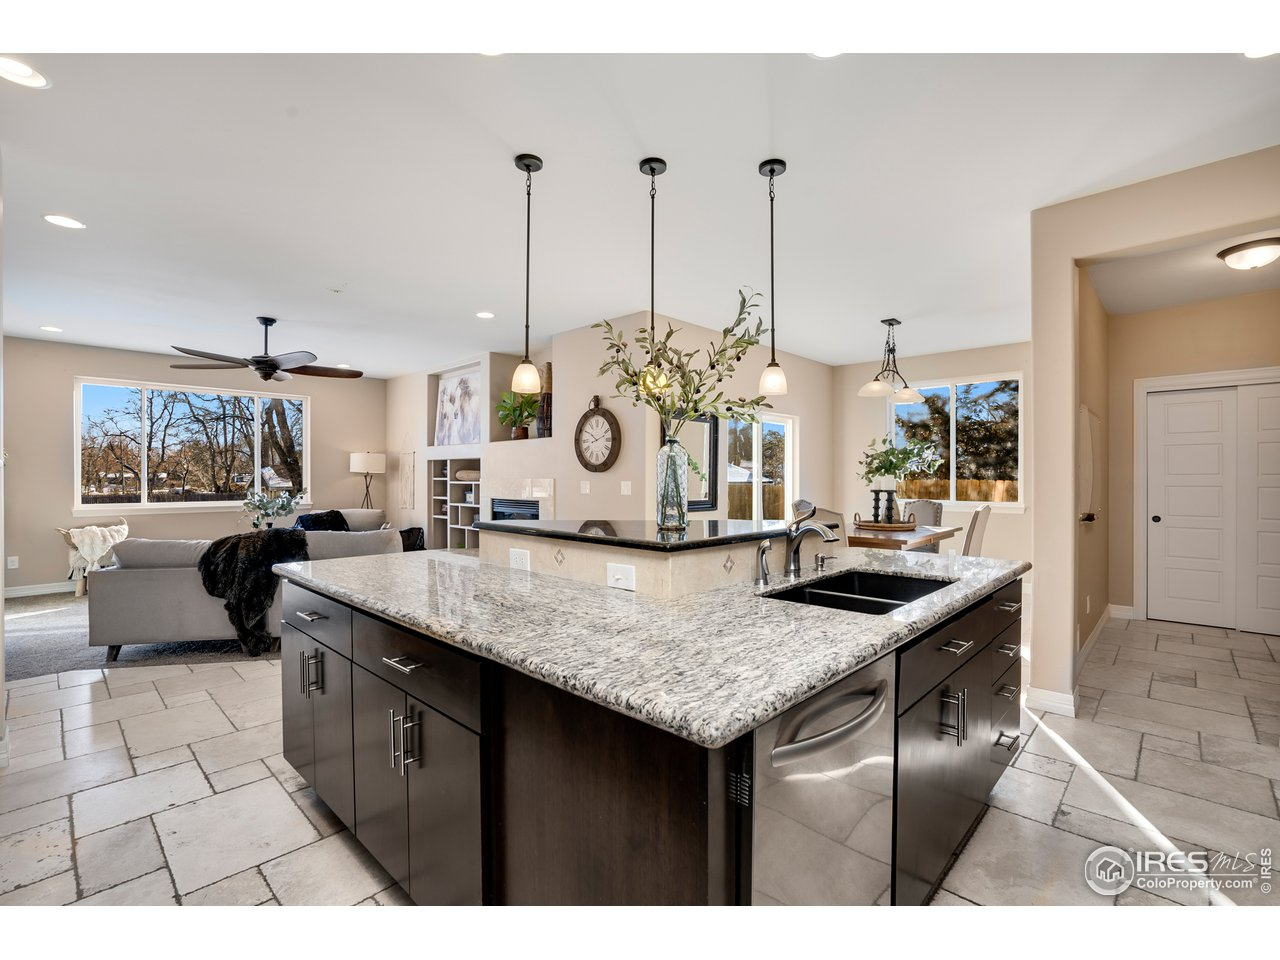 Travertine floors, granite counters, and S/S appliances included.